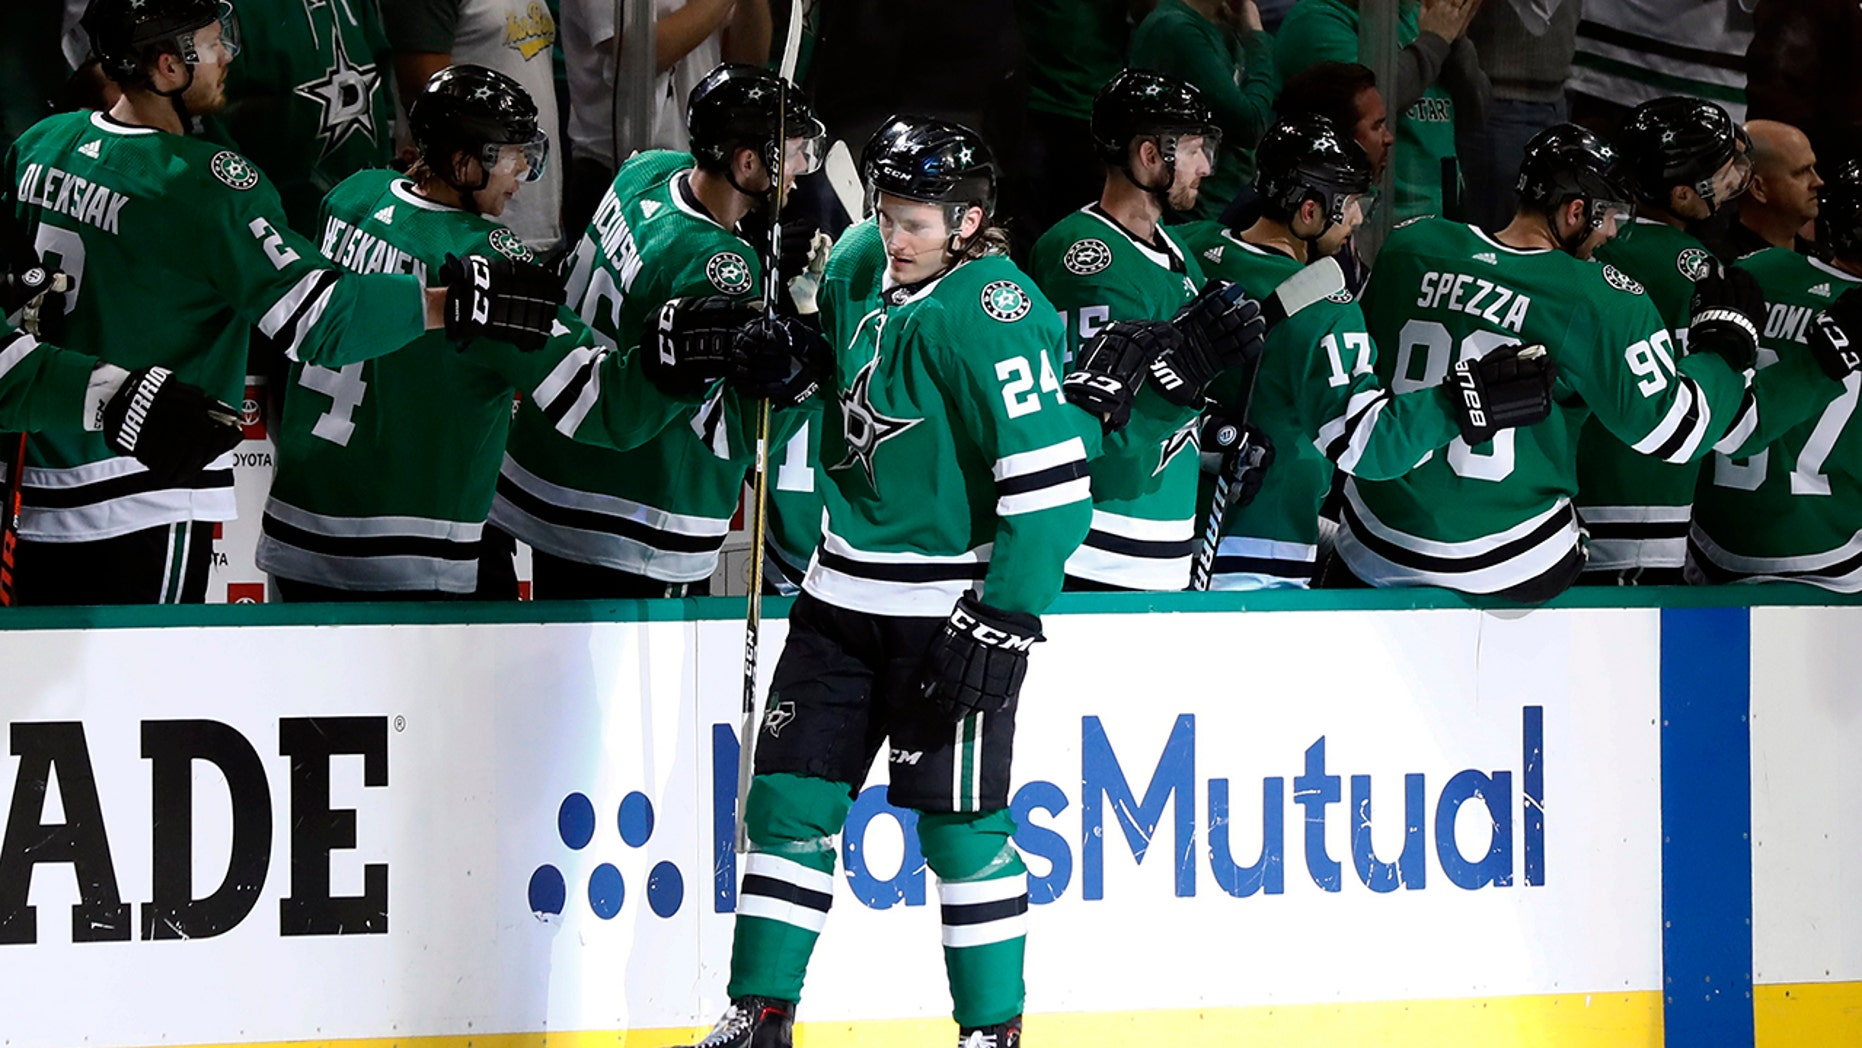 Dallas Stars' Roope Hintz (24) is congratulated by the bench after scoring against the Nashville Predators during the second period of Game 4 in an NHL hockey first-round playoff series in Dallas, Wednesday, April 17, 2019. (AP Photo/Tony Gutierrez)